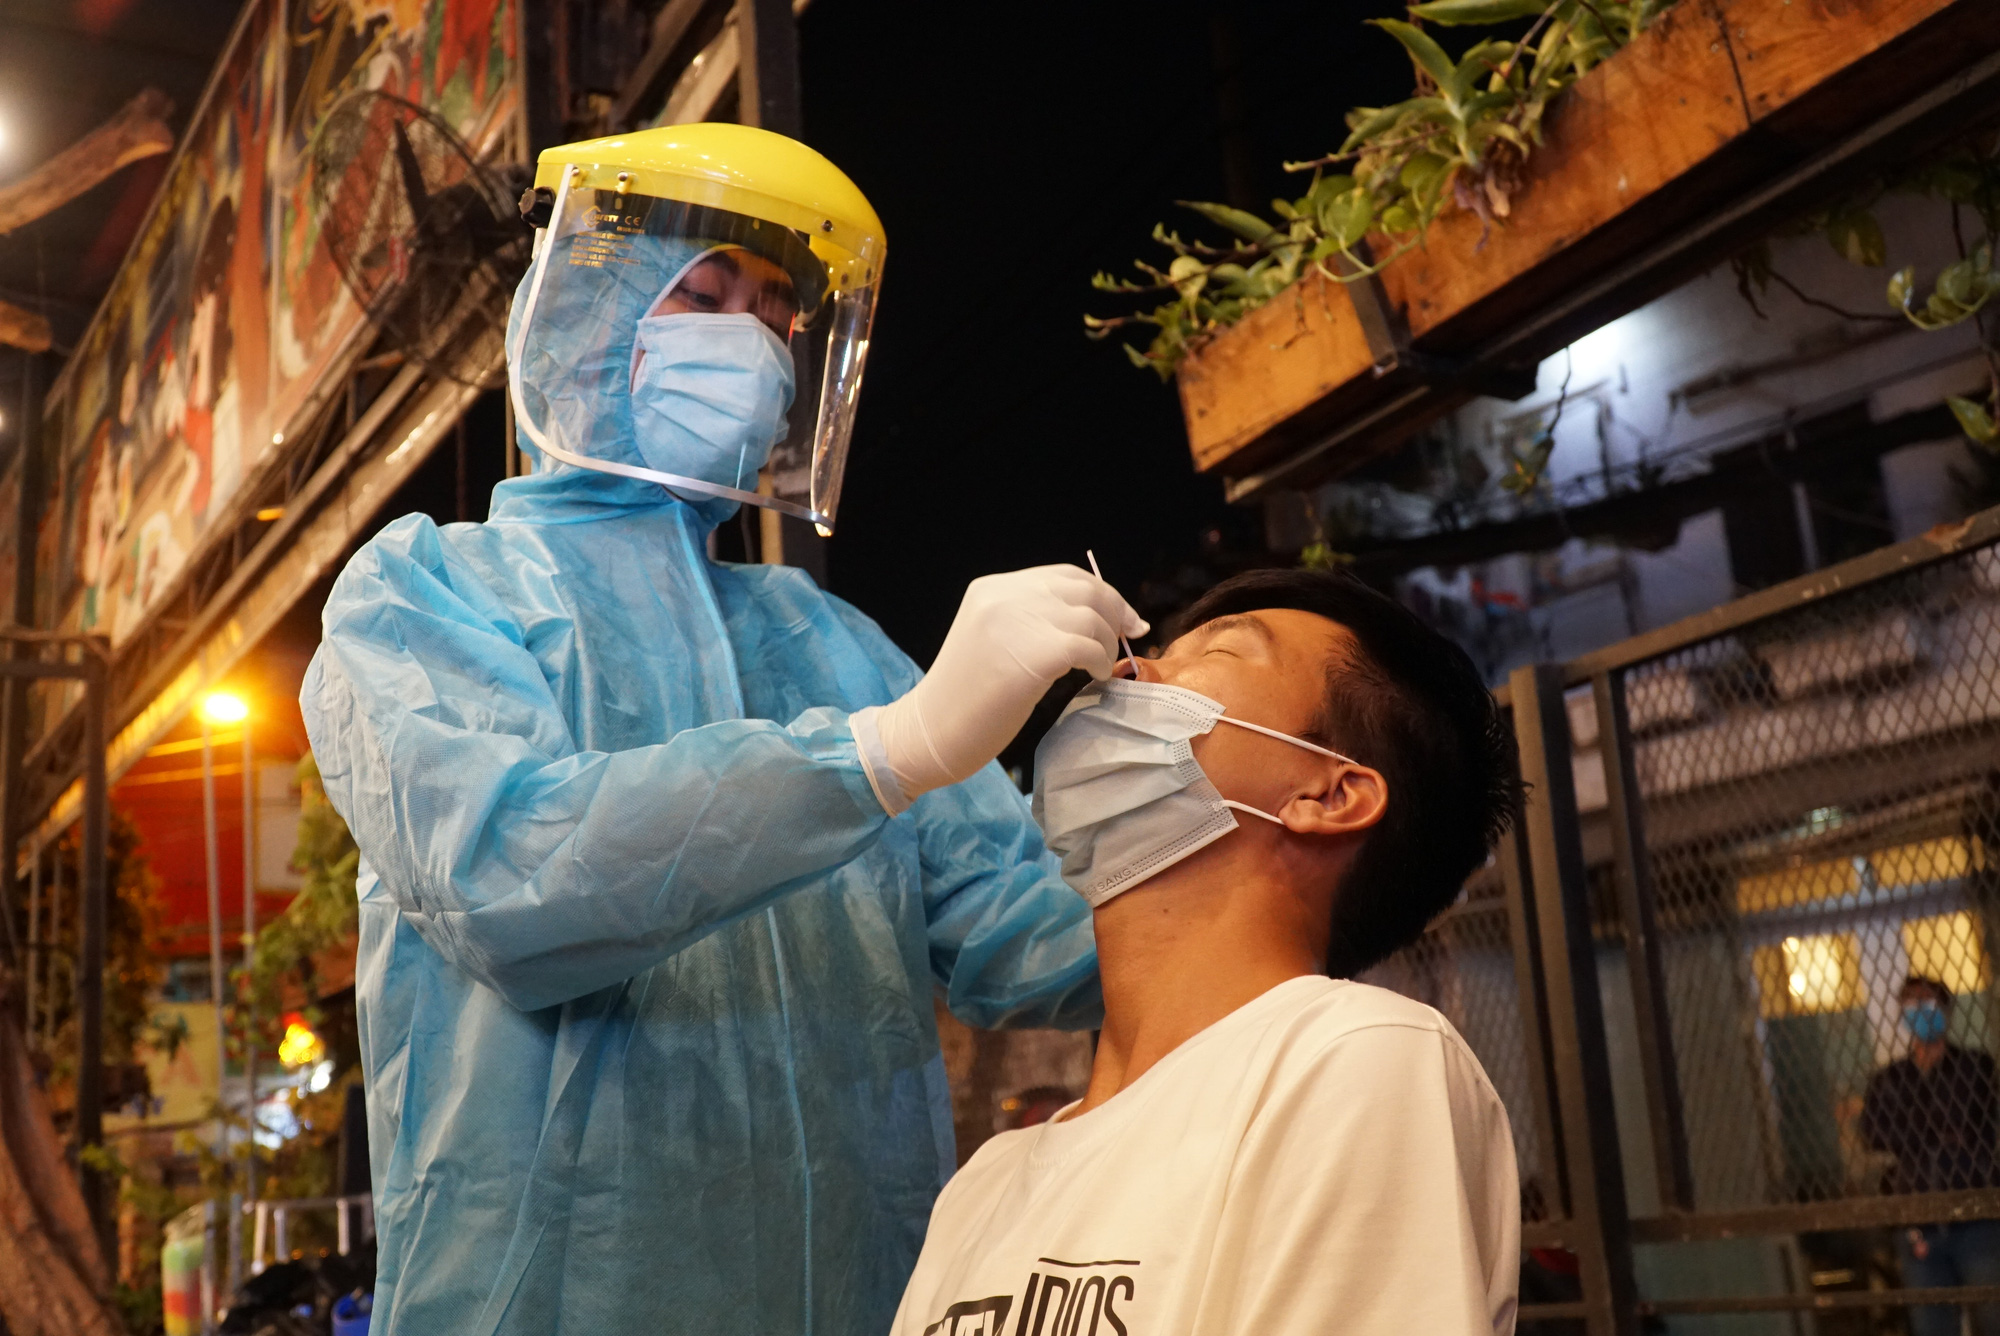 A medical worker samples a man at a restaurant in Ward 11, Binh Thanh District, Ho Chi Minh City, February 22, 2021. Photo: Dan Thuan / Tuoi Tre